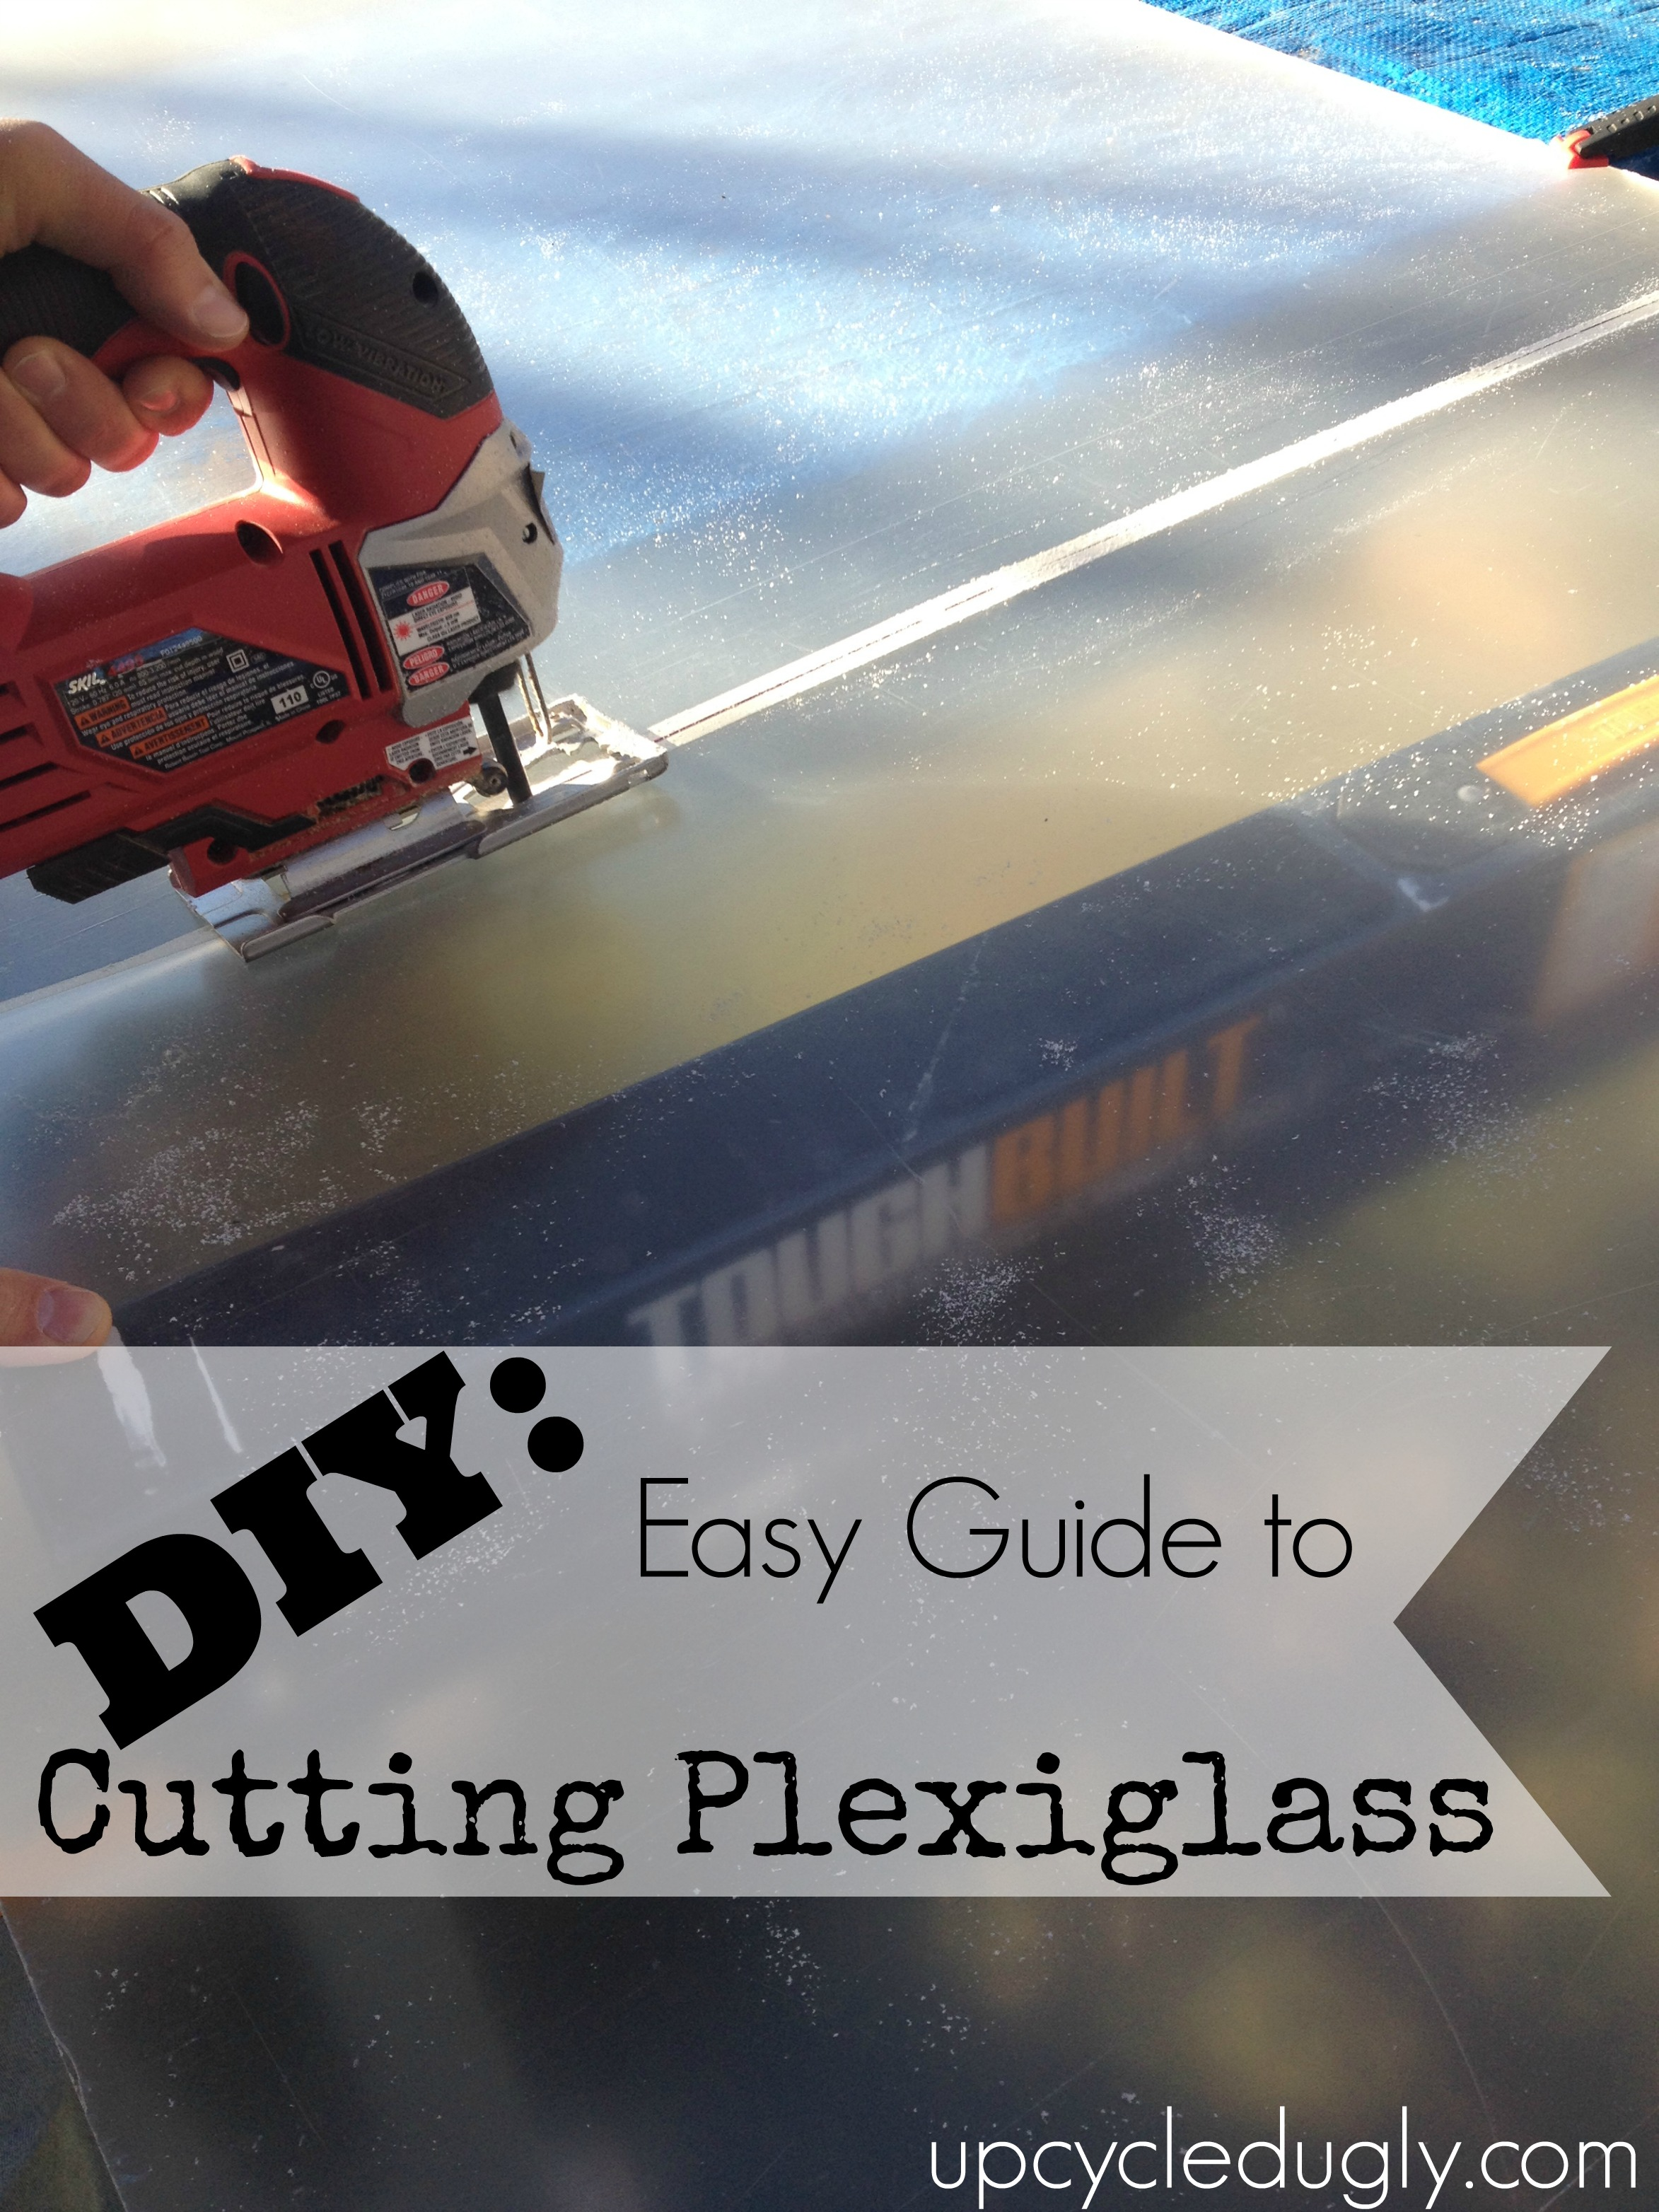 Diy Easy Guide To Cutting Plexiglass Upcycled Ugly